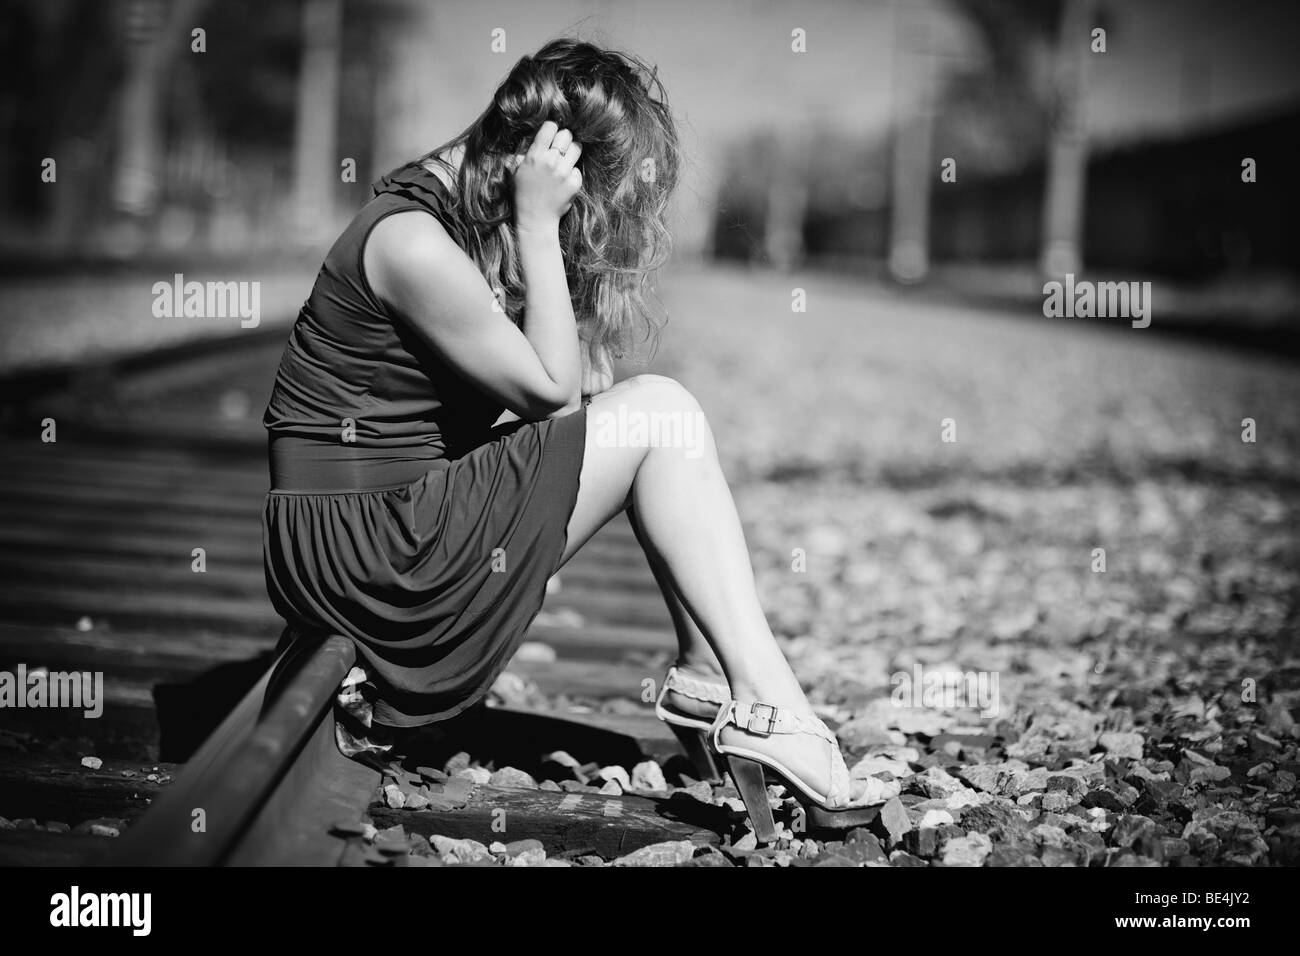 Young woman sitting on a rails sadness concept stock image